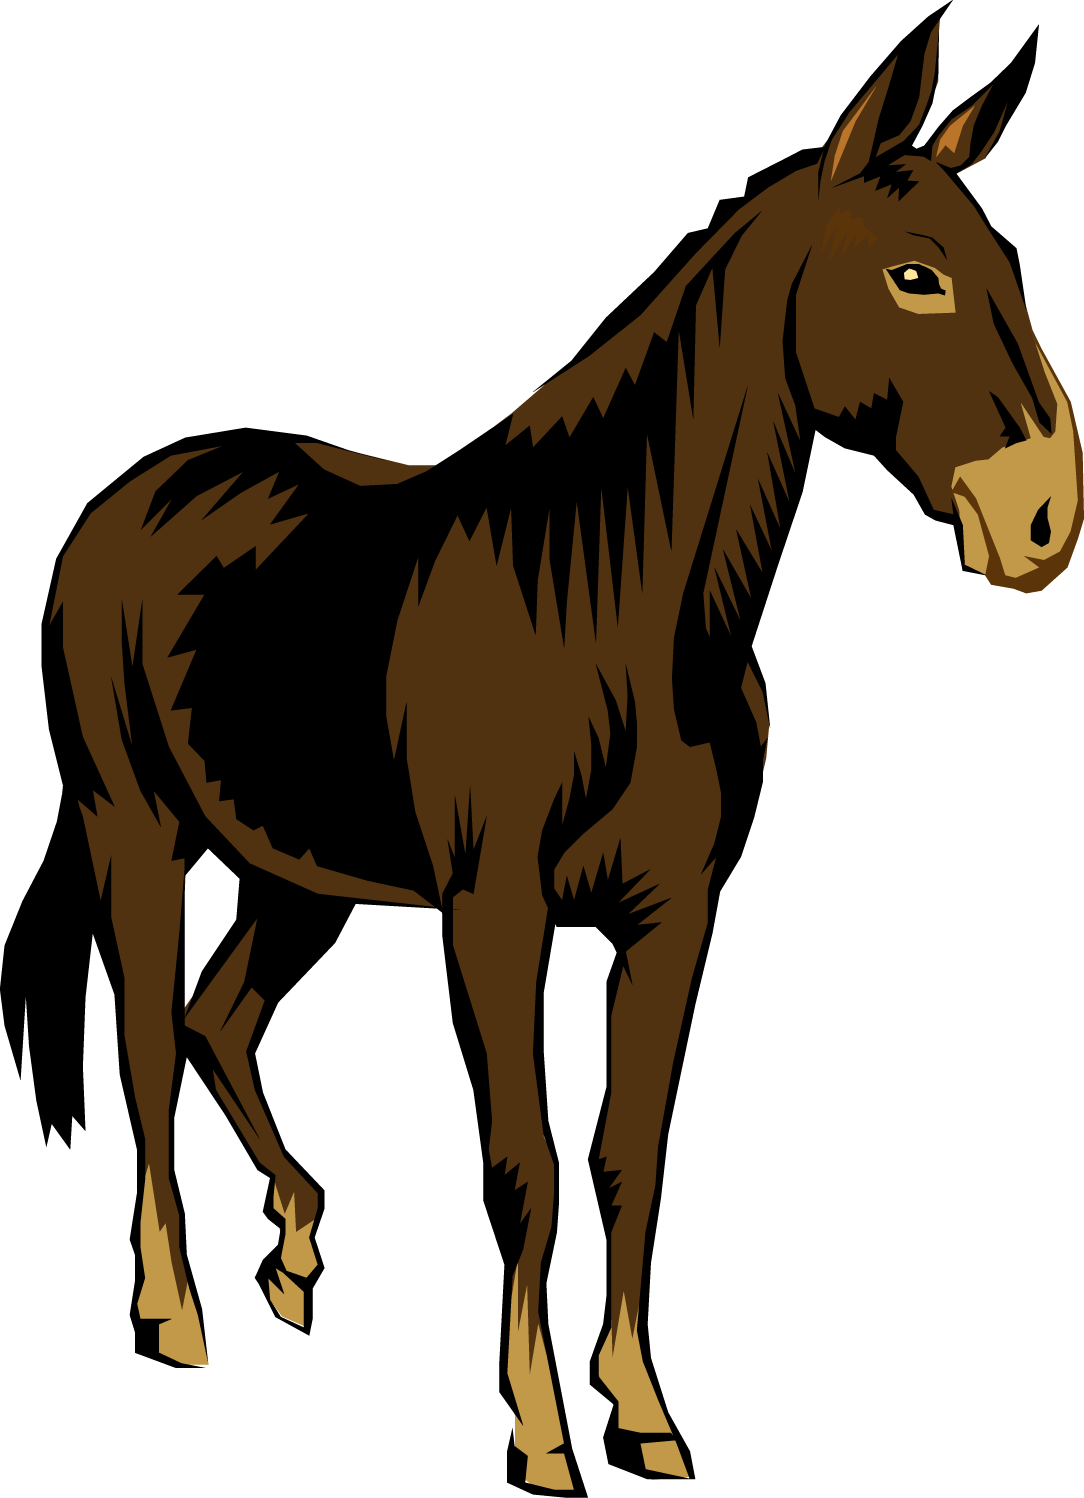 Mule clipart #13, Download drawings